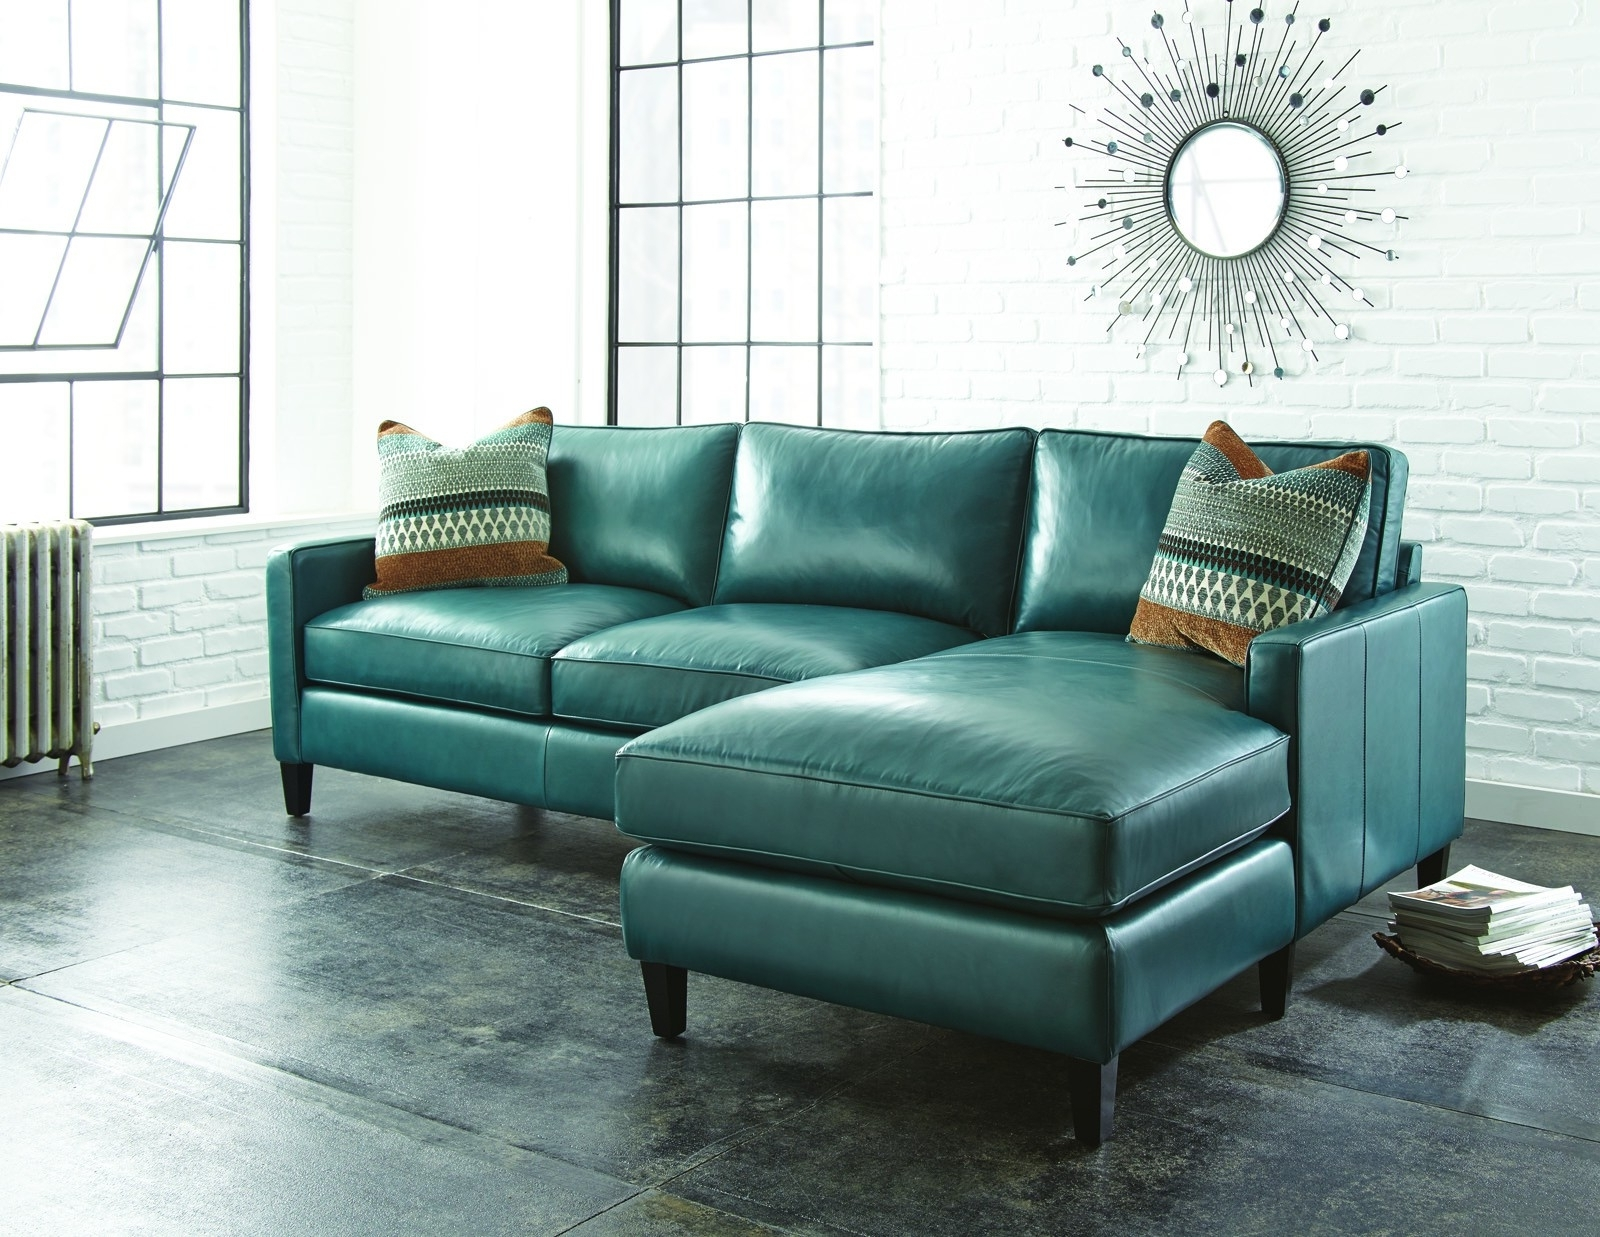 Well Known Green Sectional Sofas With Chaise For New Ideas Green Leather Sectional Sofa And Modern Green Leather (View 16 of 20)